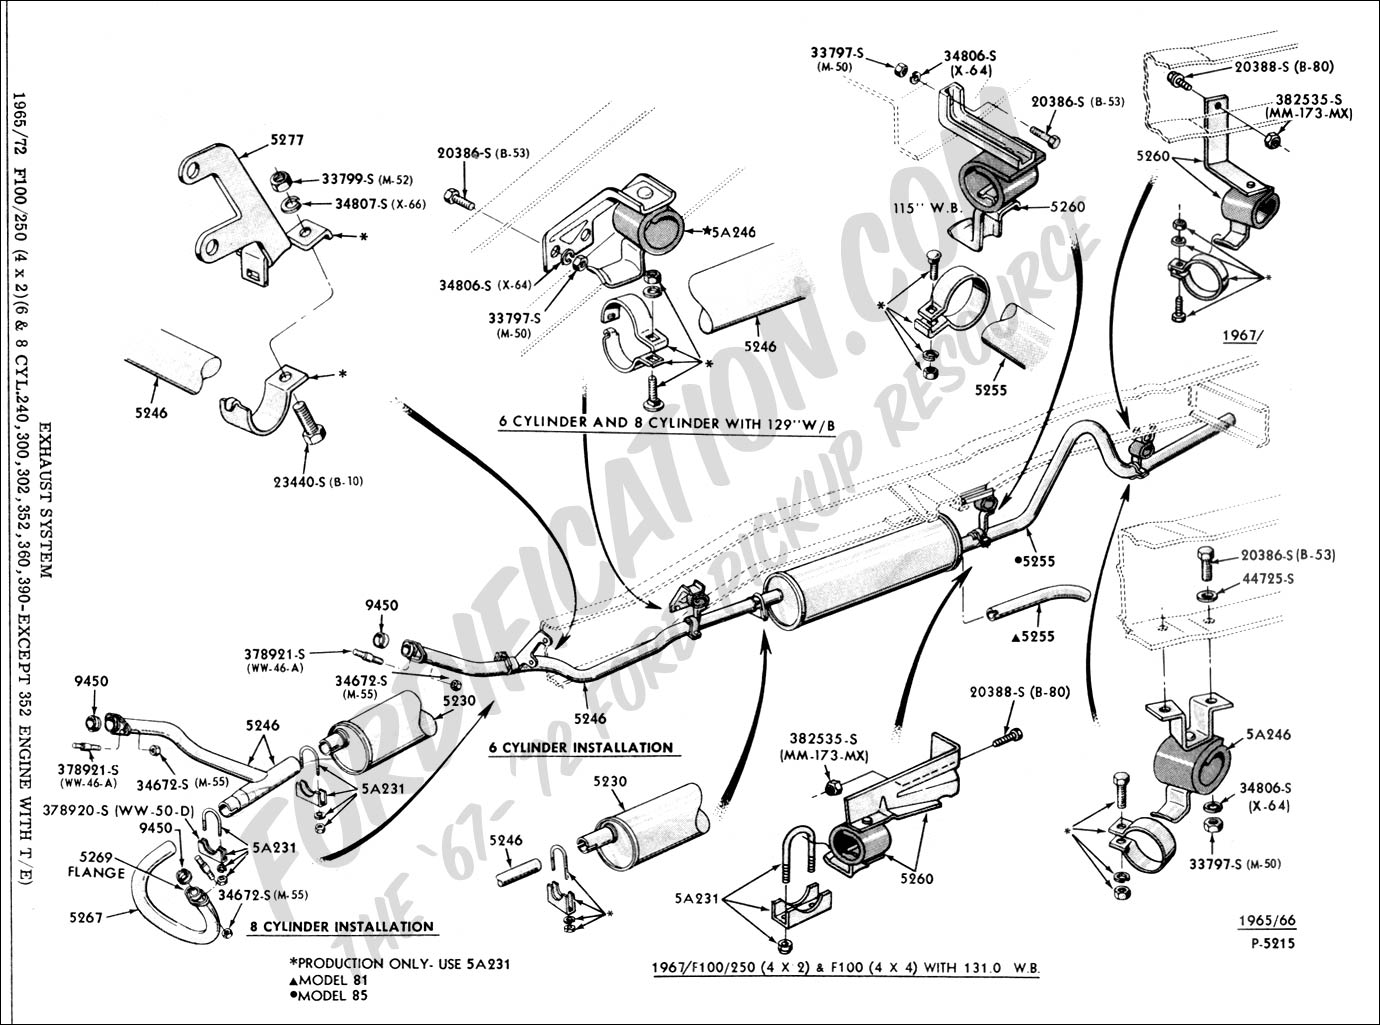 2000 Ford F150 Exhaust System Diagram Wiring Diagrams Source Nissan Schema 1997 Taurus 1989